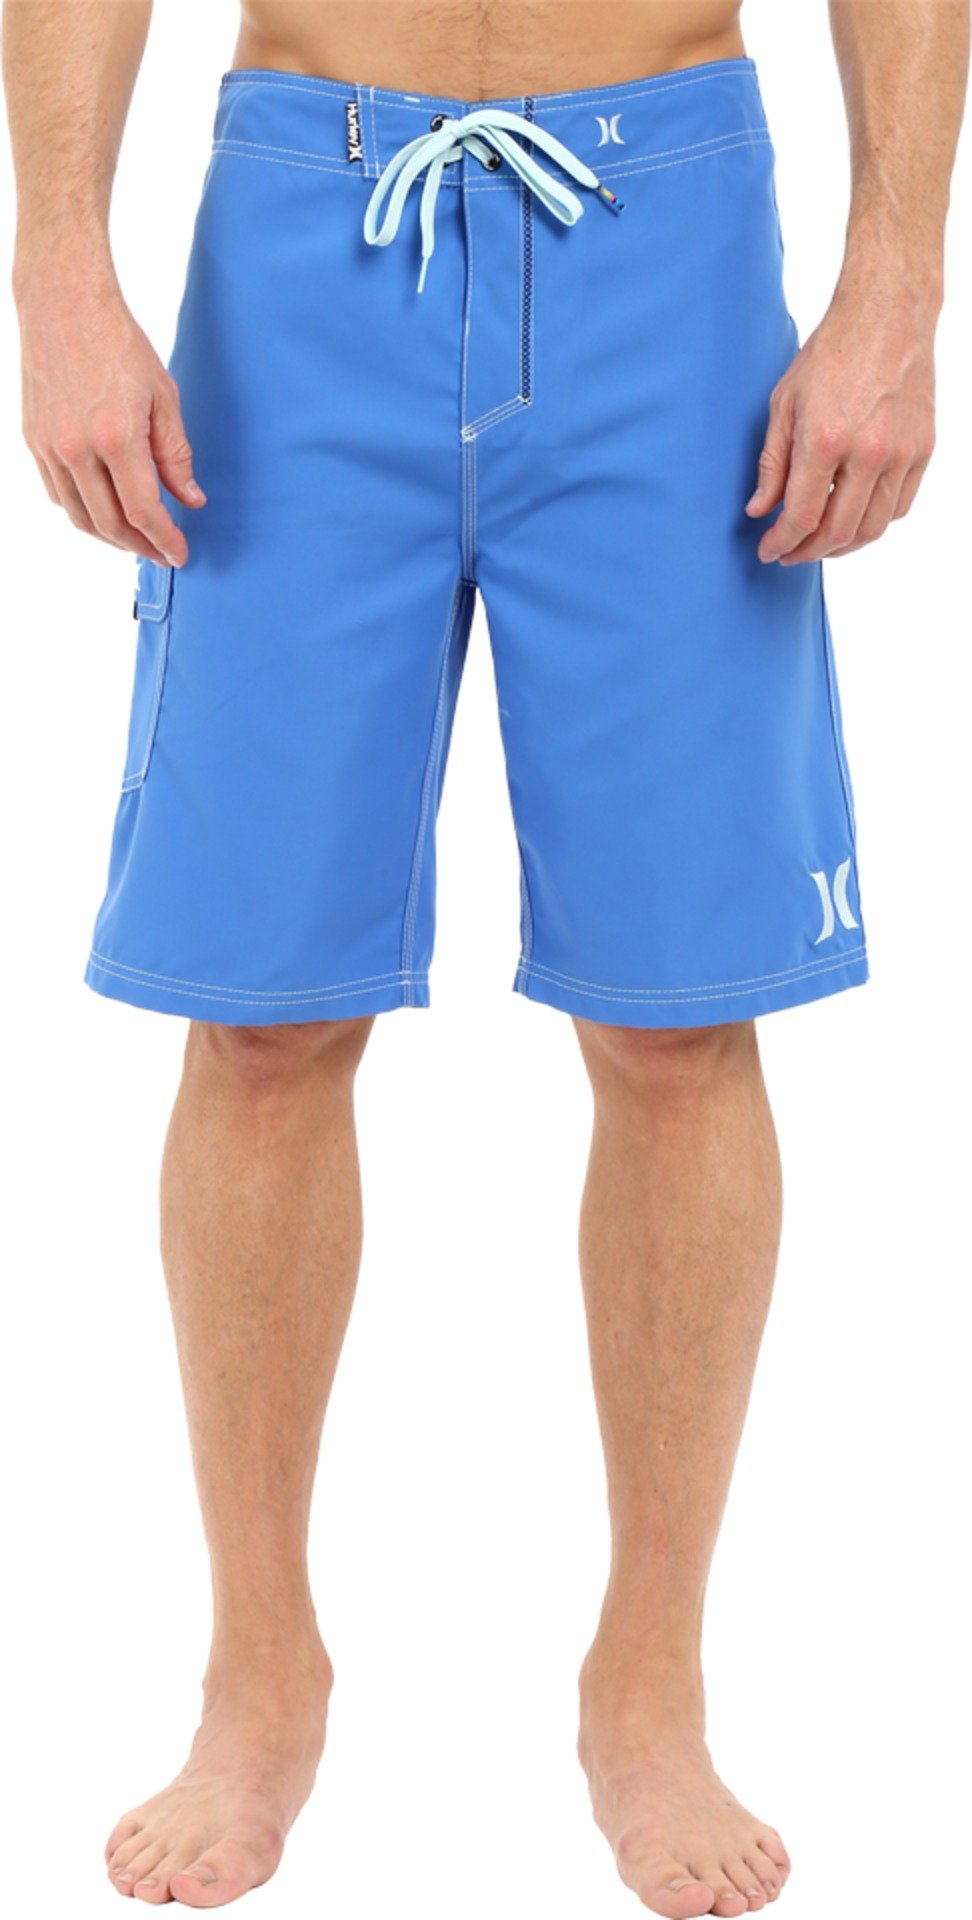 Hurley Men's One and Only 22'' Boardshorts Fountain Blue Swimsuit Bottoms by Hurley